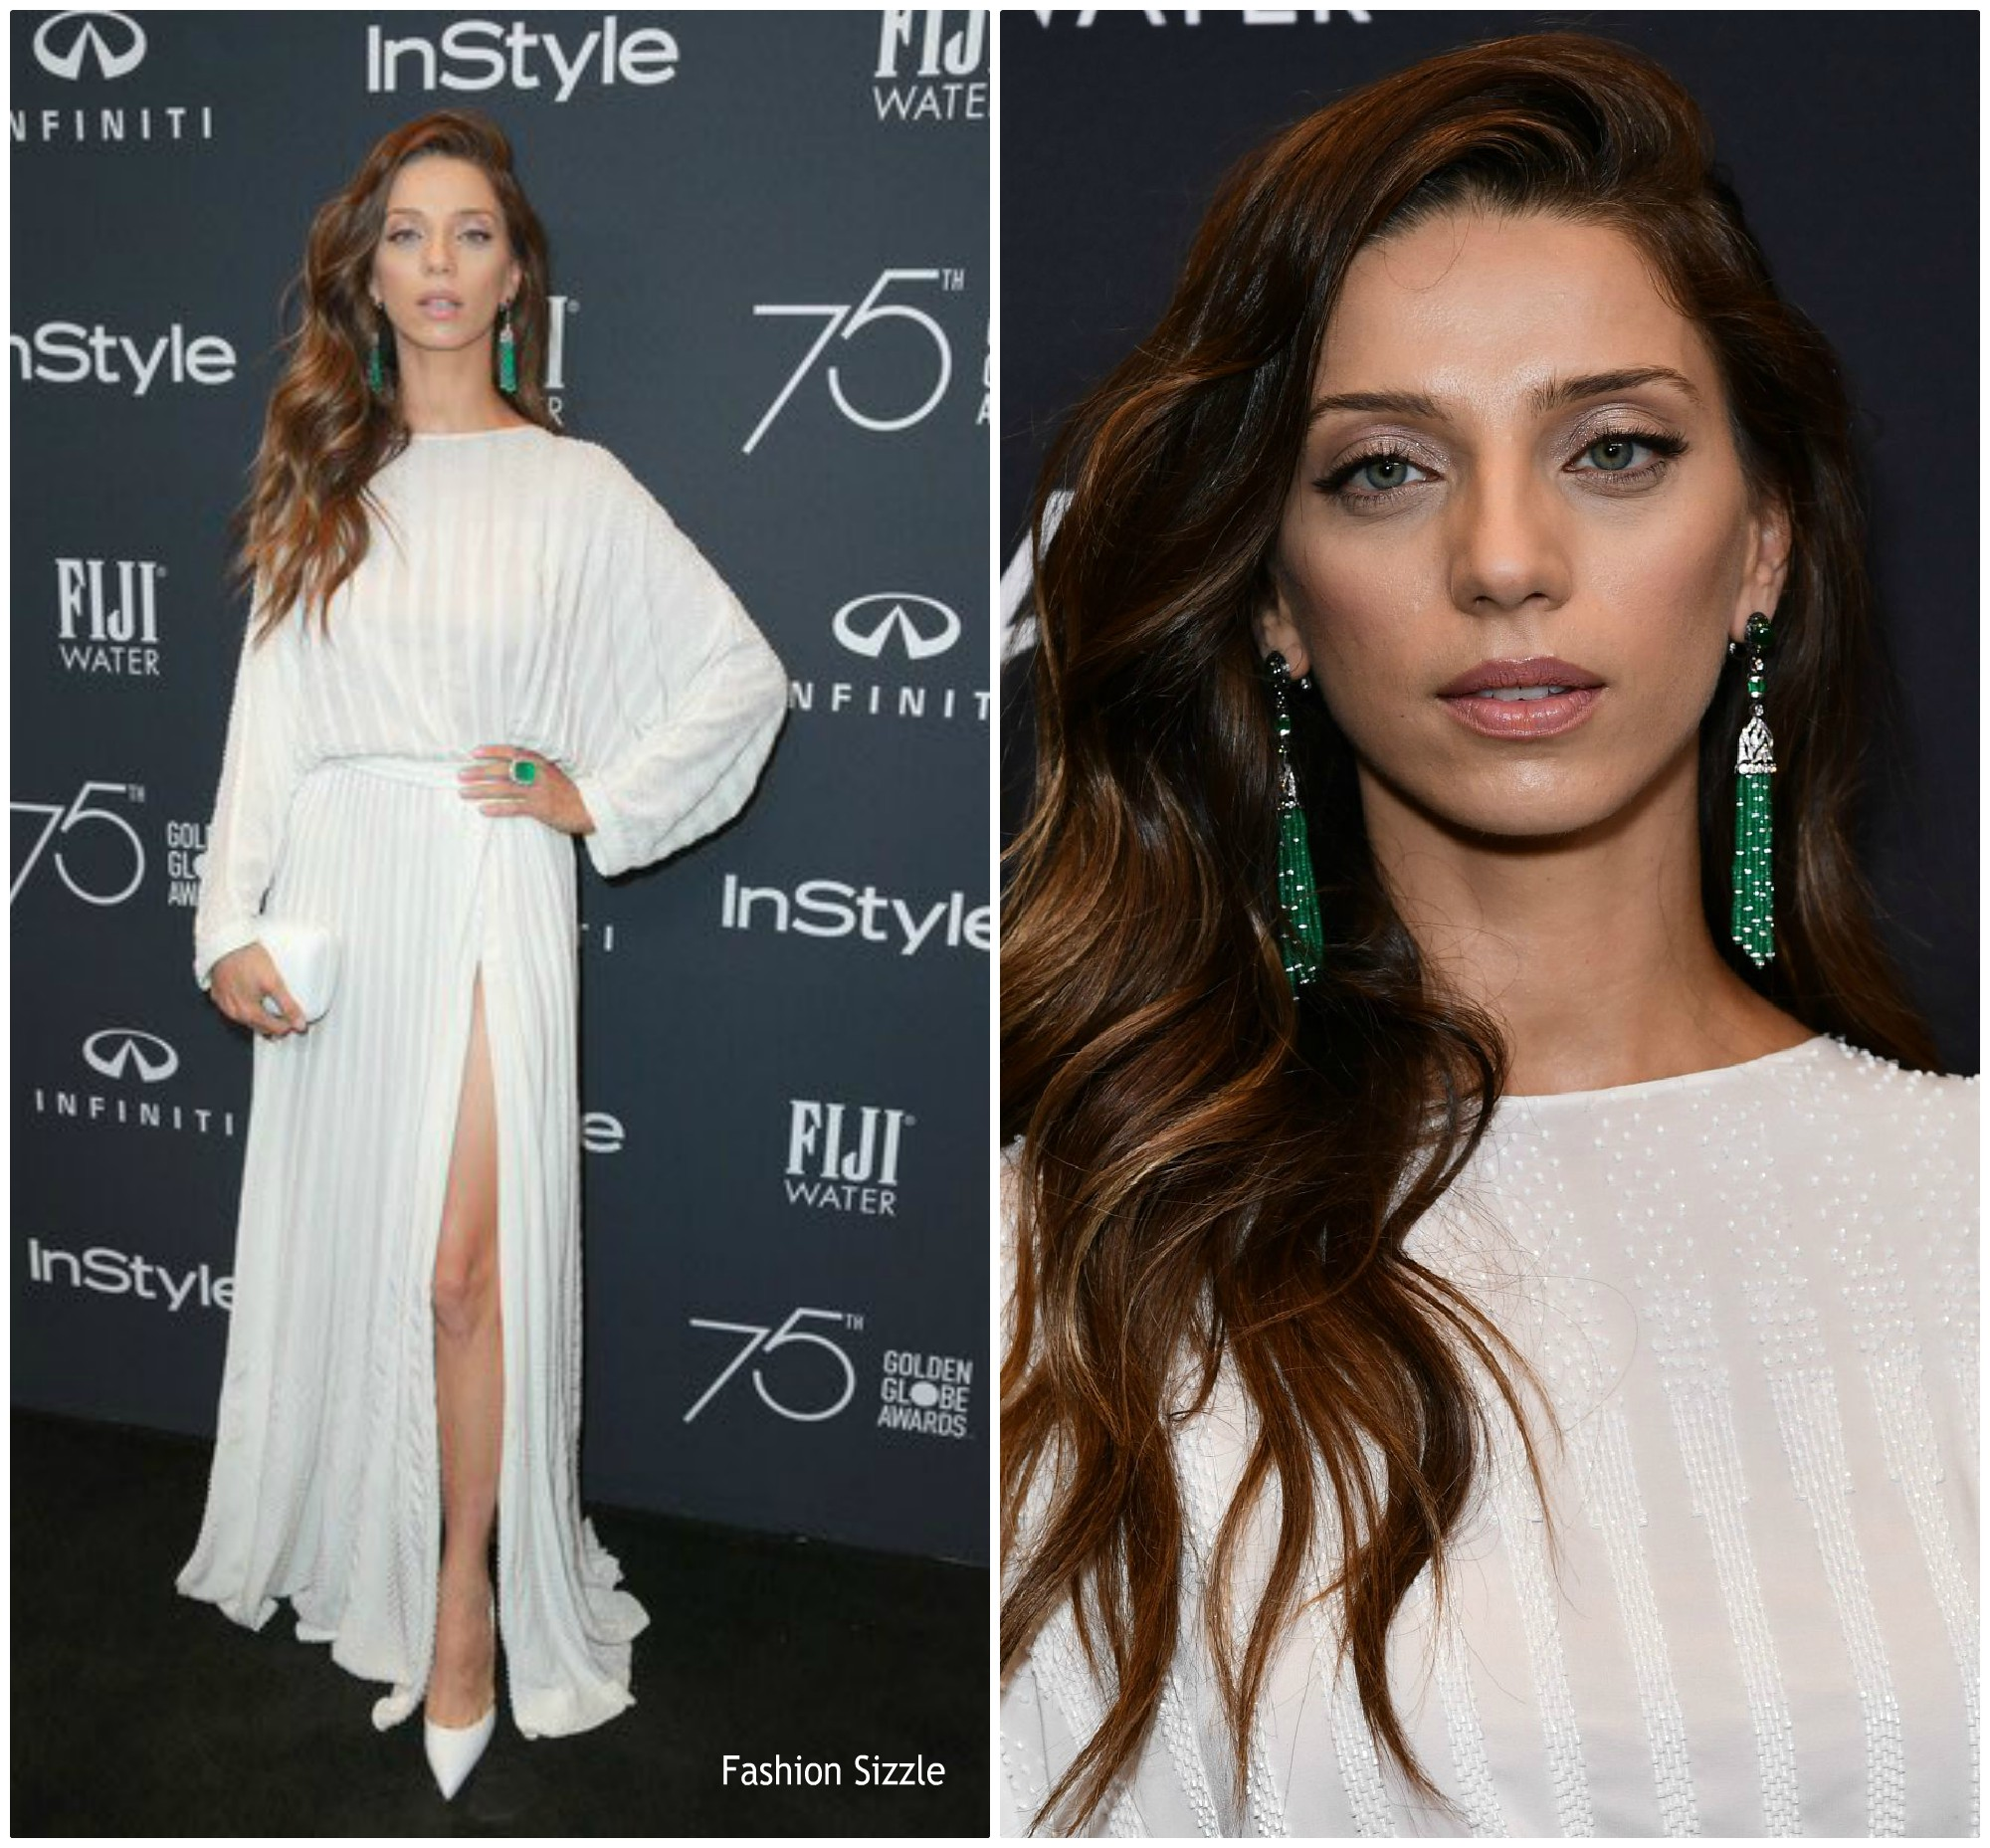 angela-sarafyan-in-mario-dice-hfpa-instyle-celebration-2018-golden-globe-awards